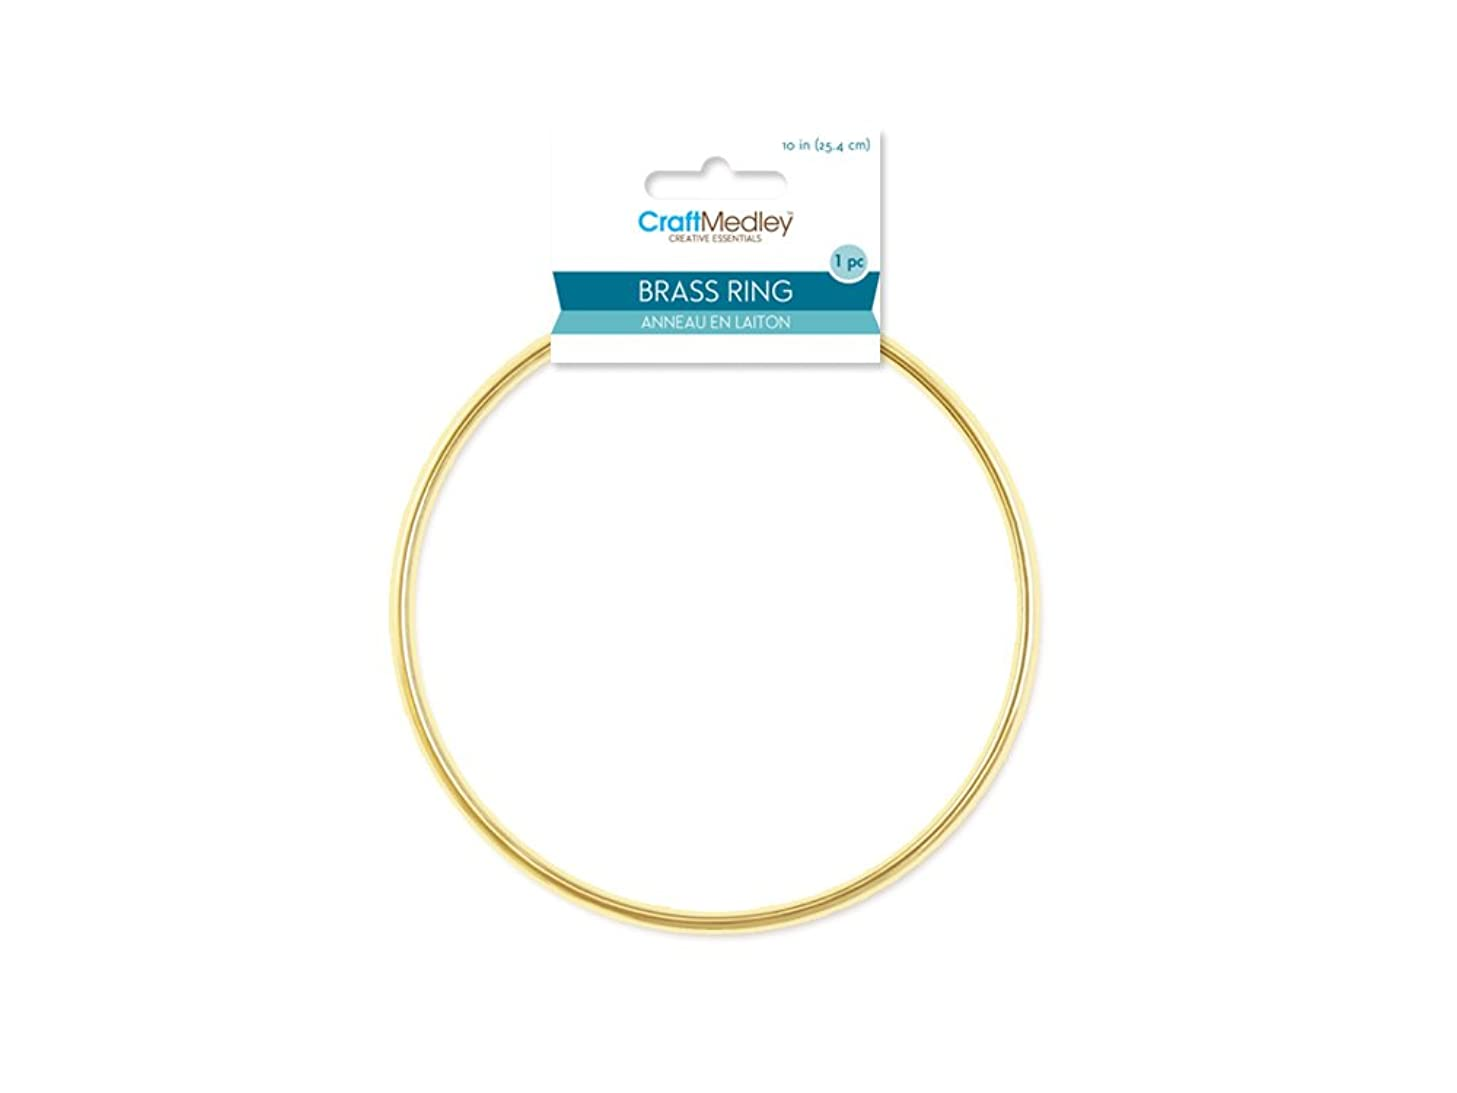 CraftMedley Brass Rings, 10in, Round, 1-Piece, 10